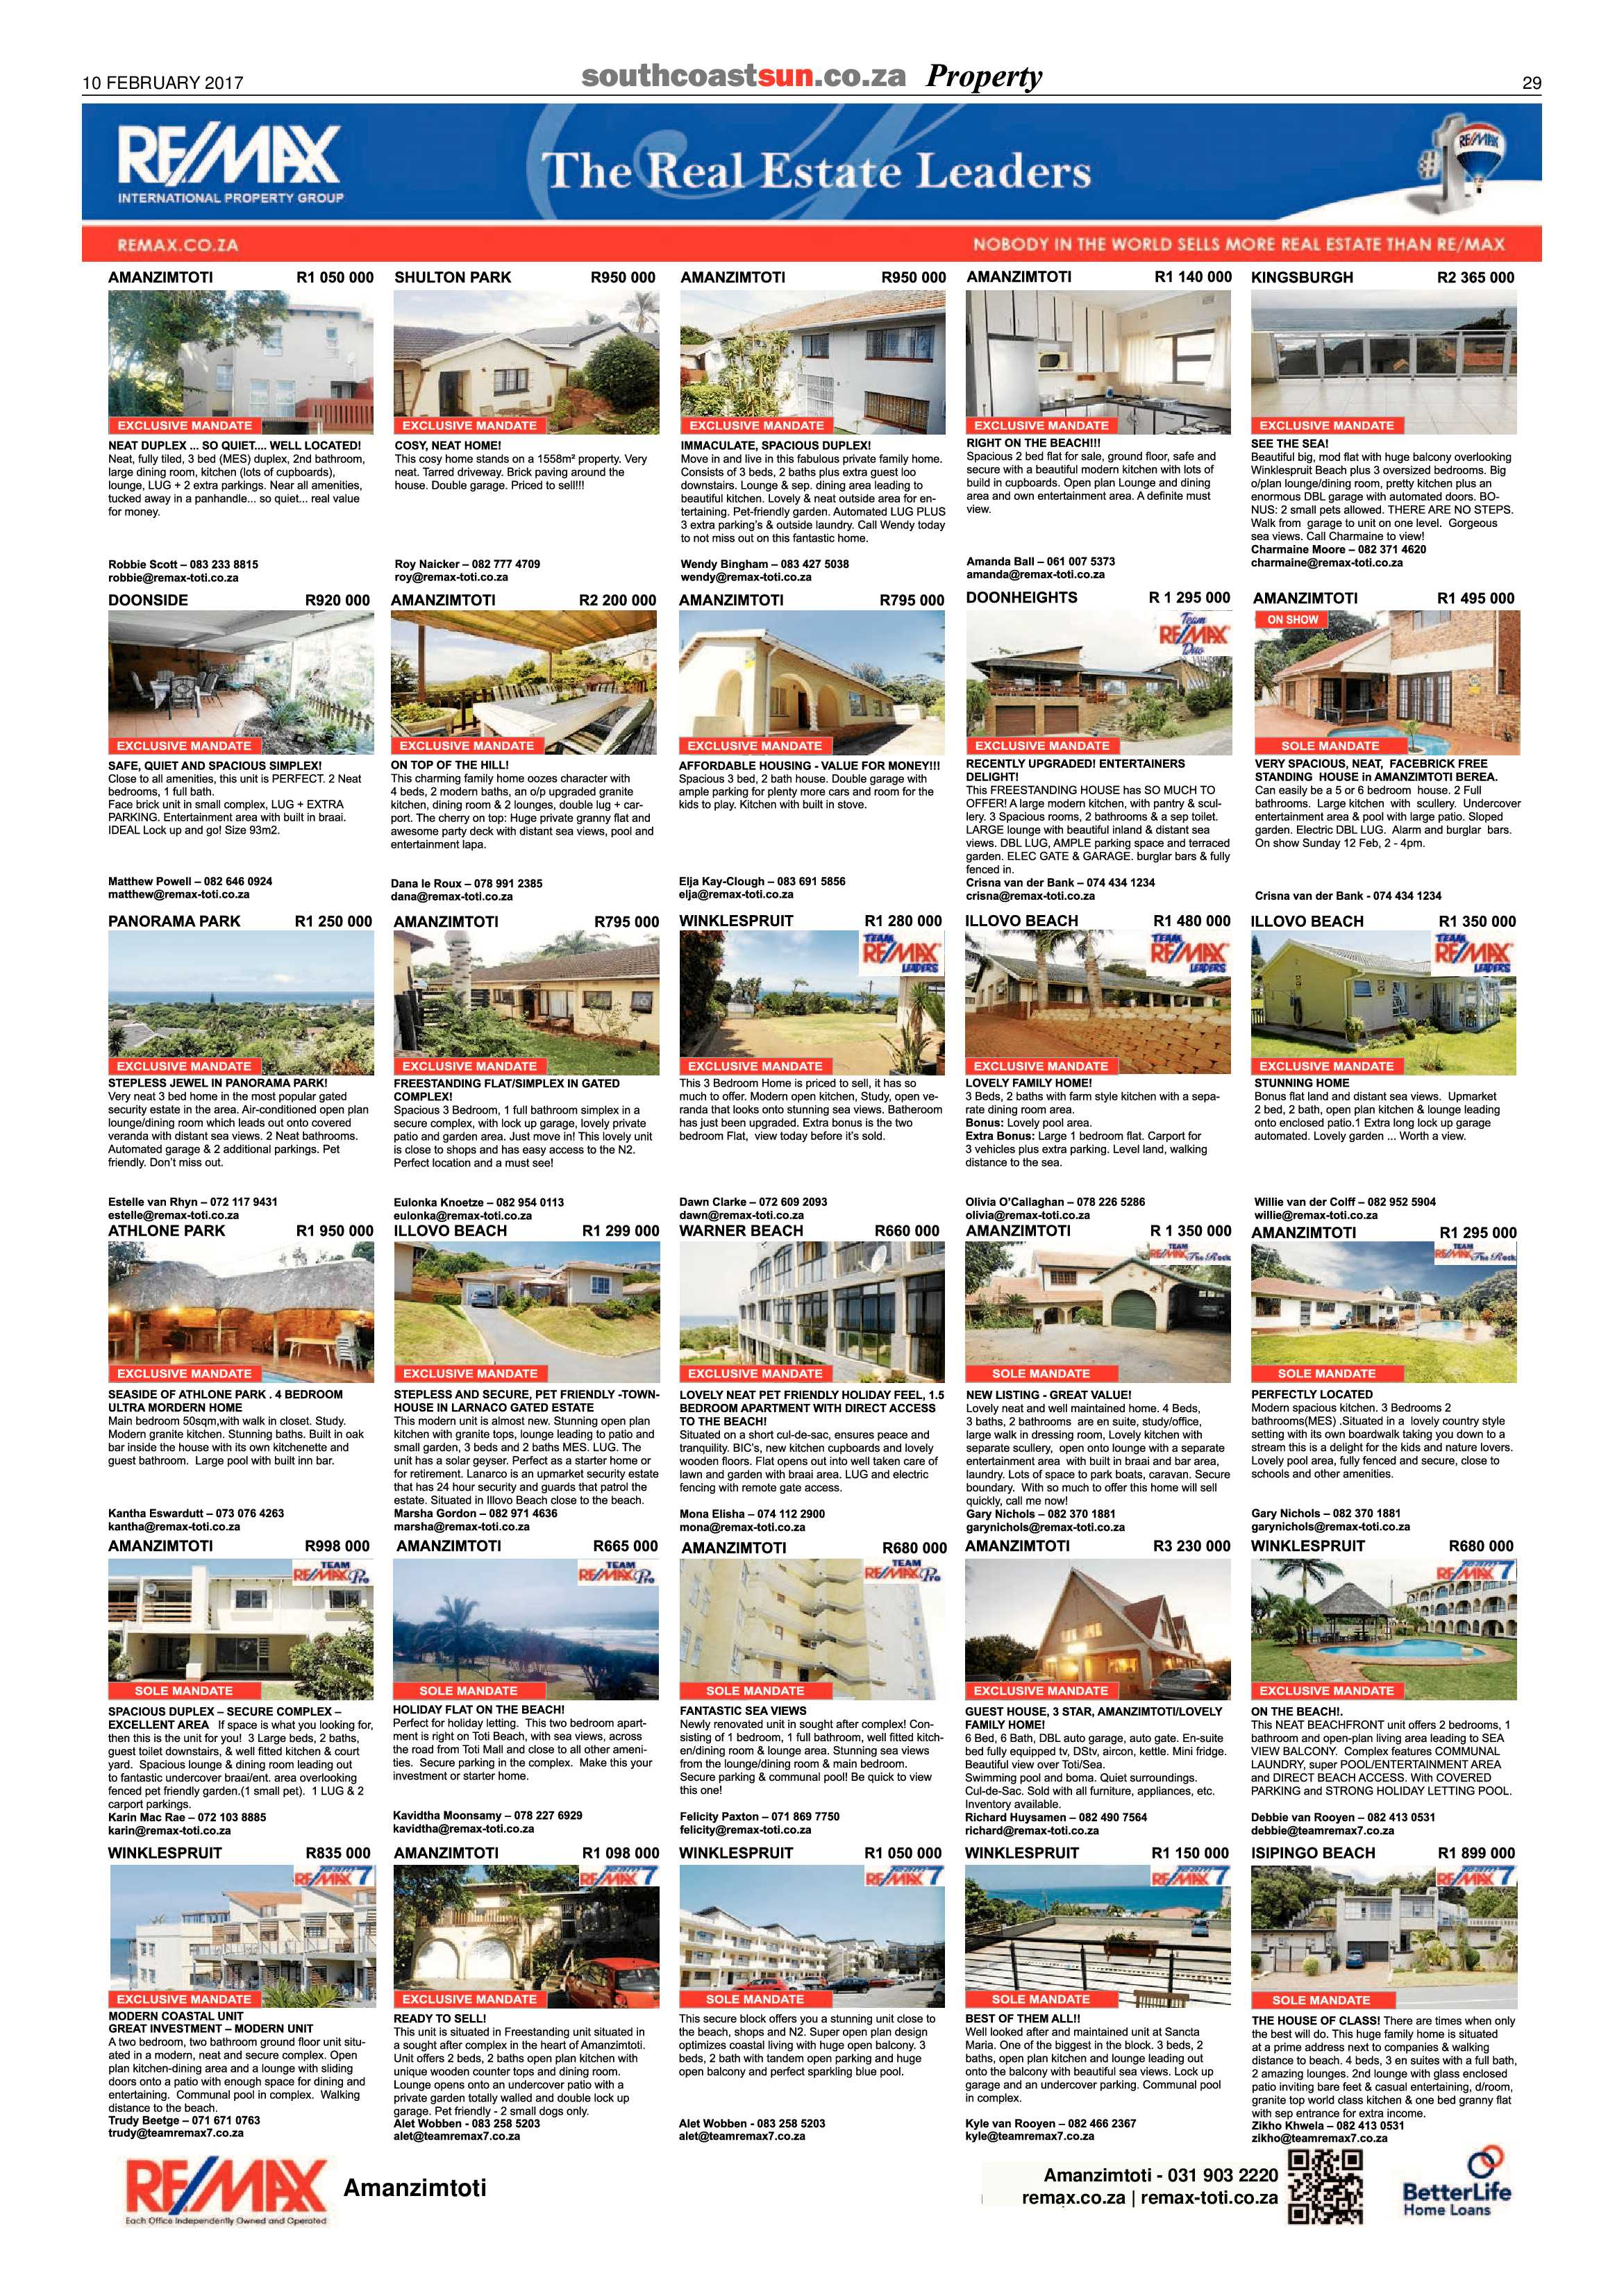 10-february-2017-epapers-page-29